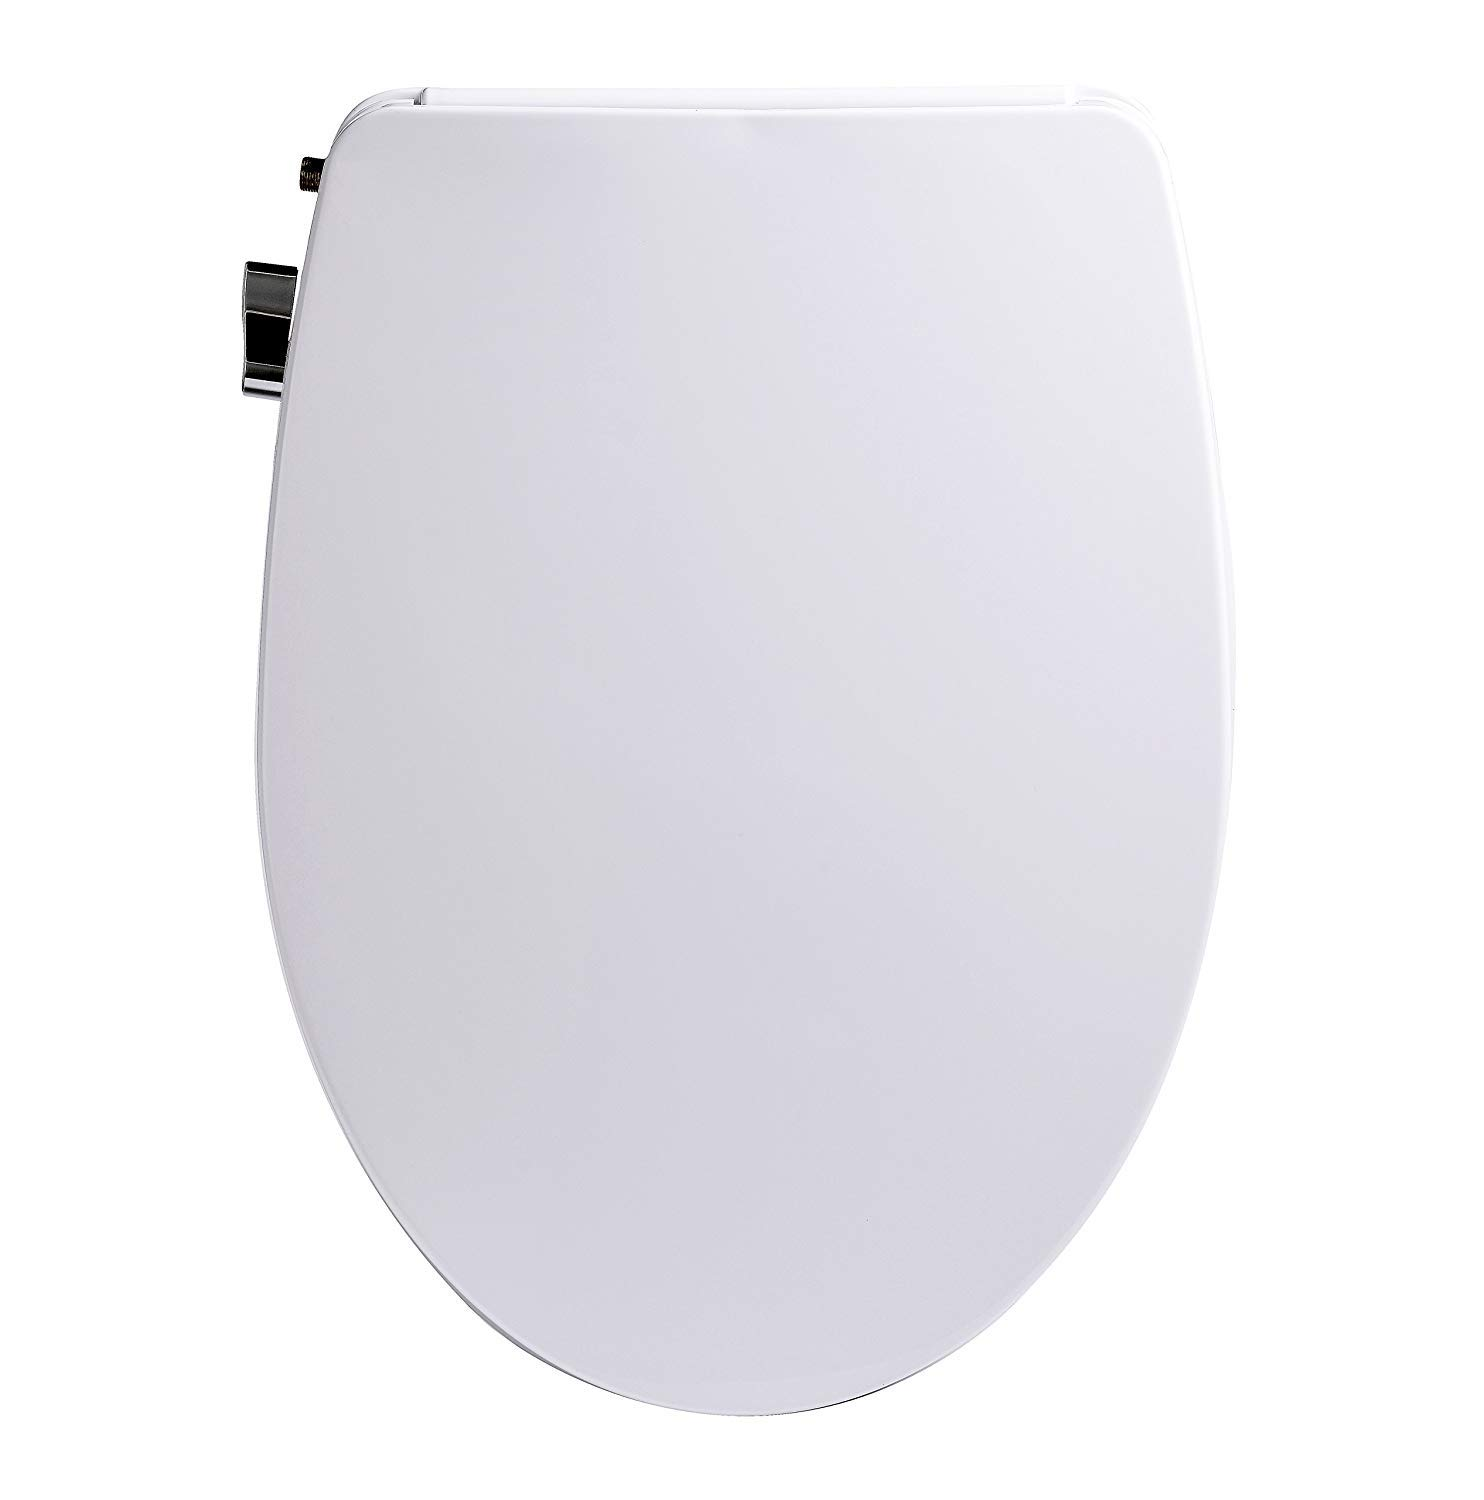 Bio Bidet A5 Stream Non Electric Bidet Toilet Seat For Elongated